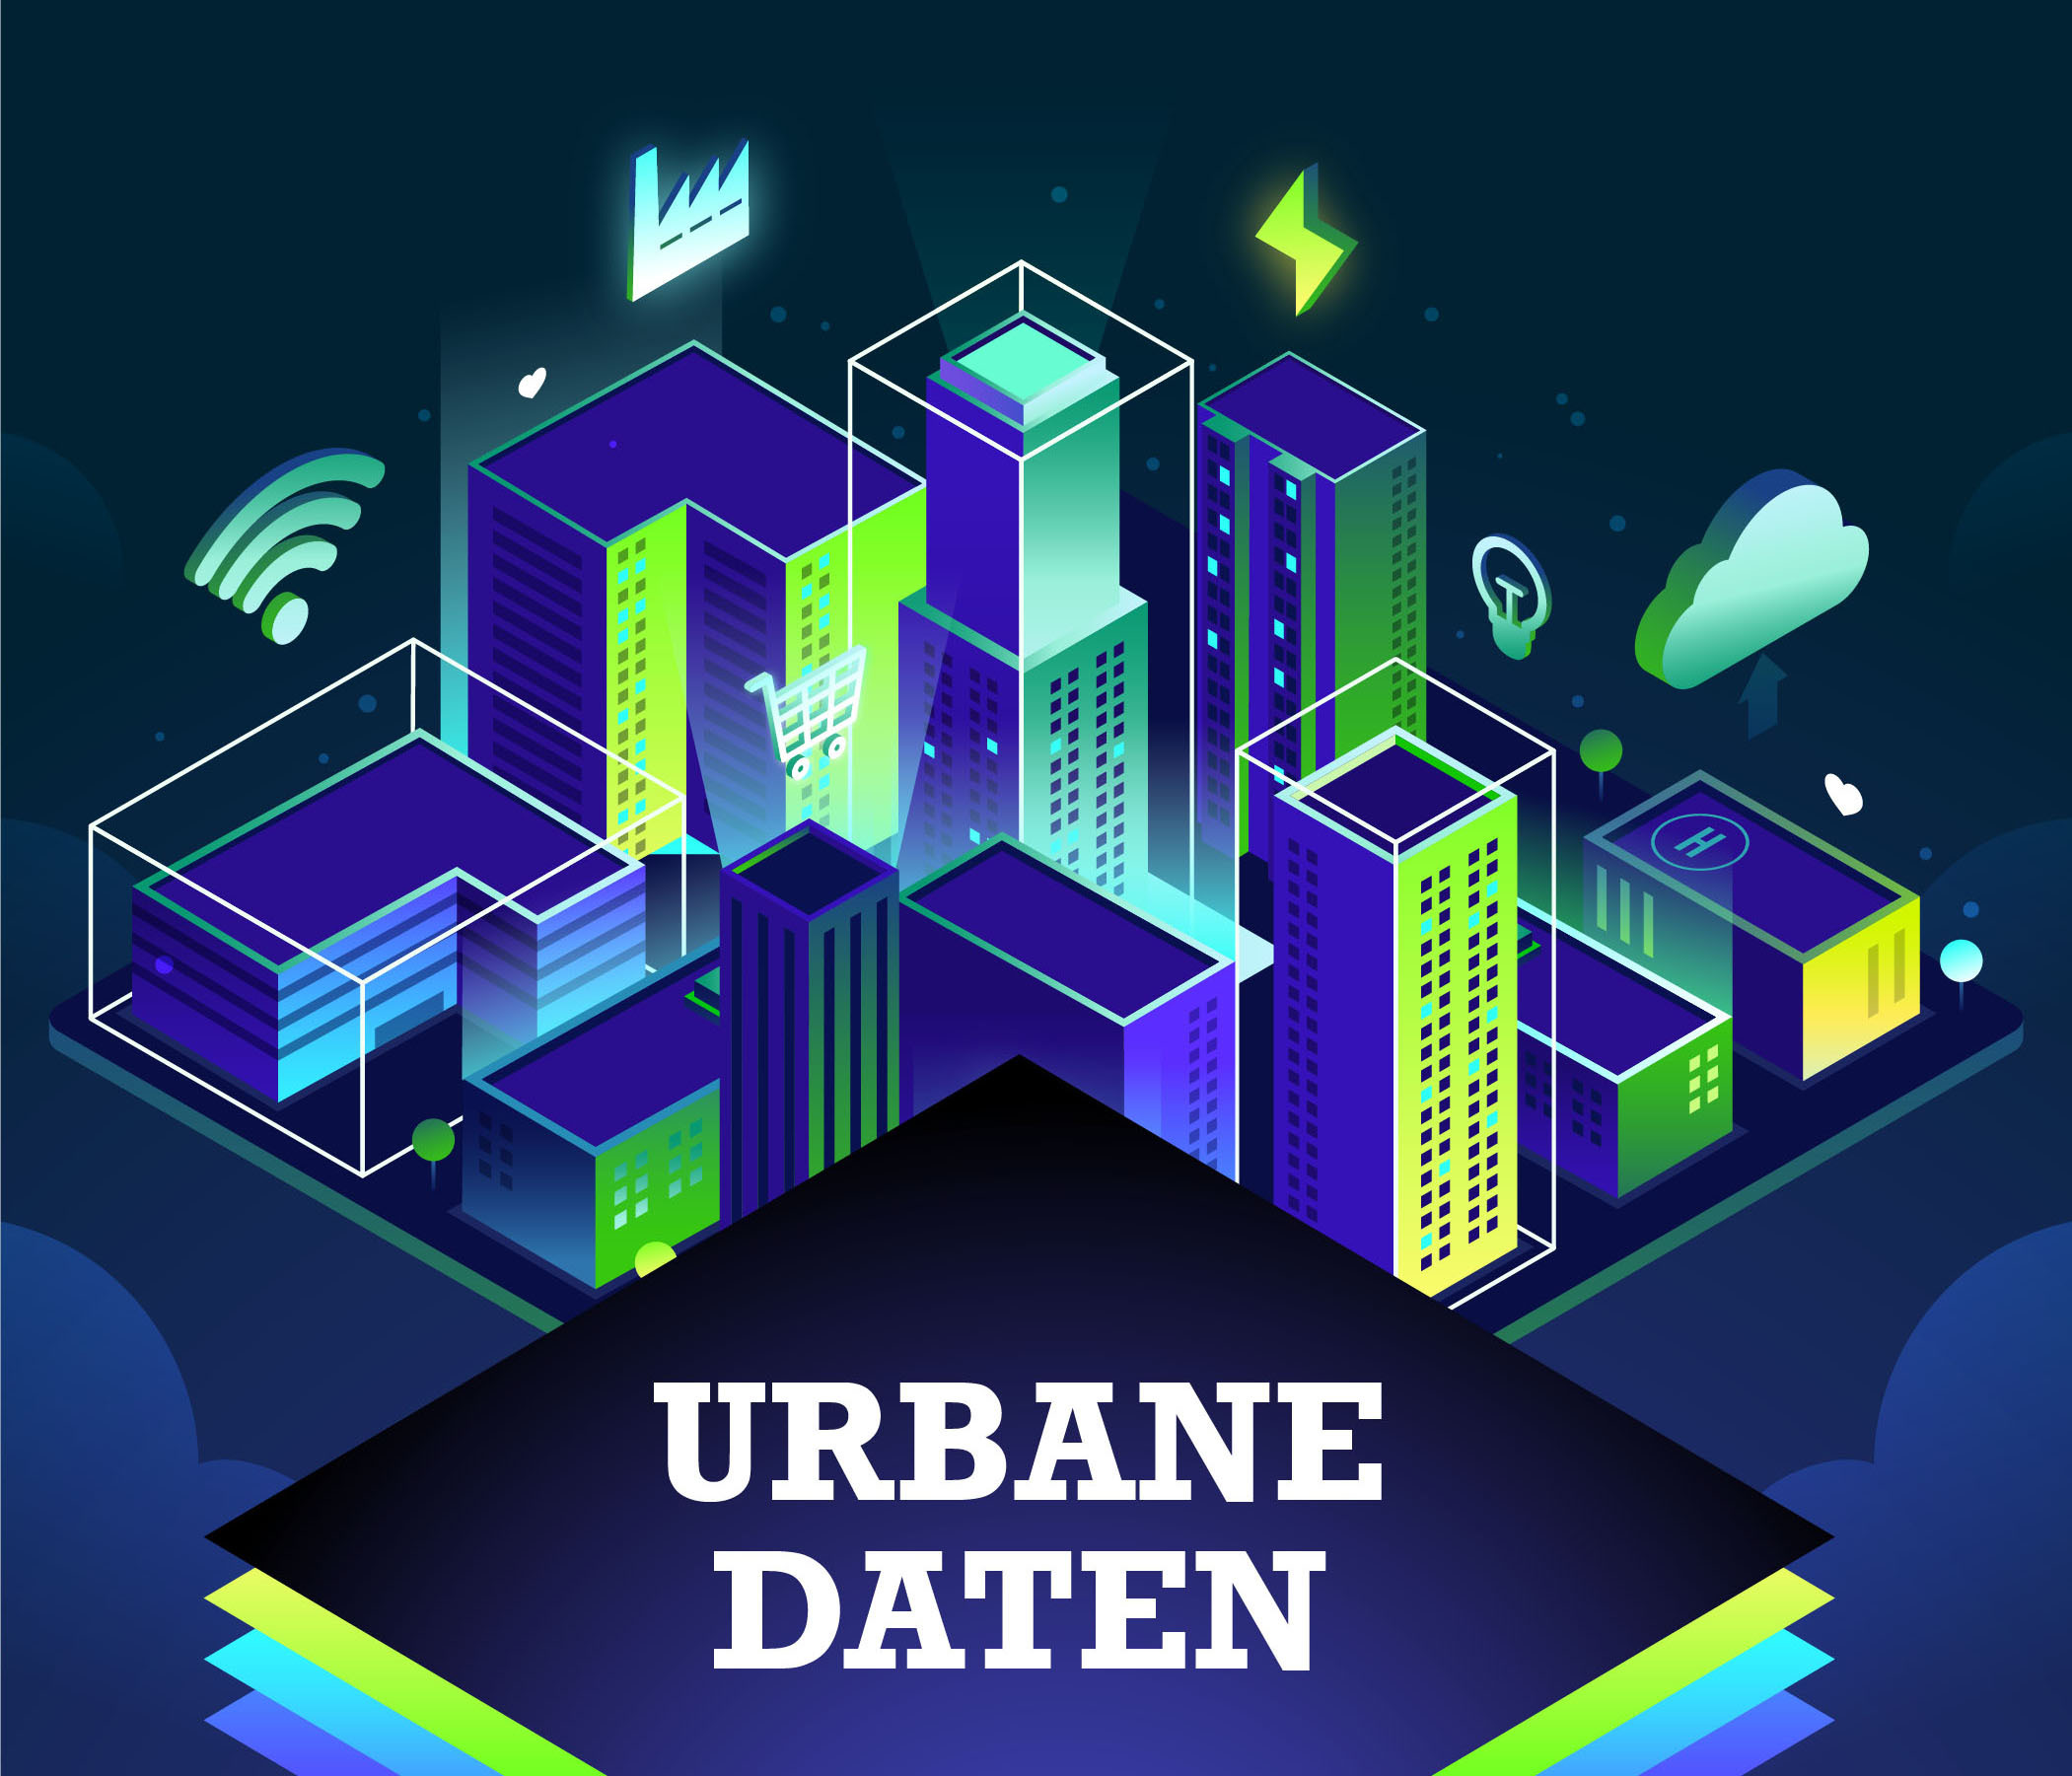 "Neon-blue and green builduings surrounded by symbols like the wifi-signal, a cloud, a flash of lightning. With the title ""Urbane Daten"" (Urban Data) in the foreground. © City of Leipzig, Digital City Unit, Taras Kompaniets"